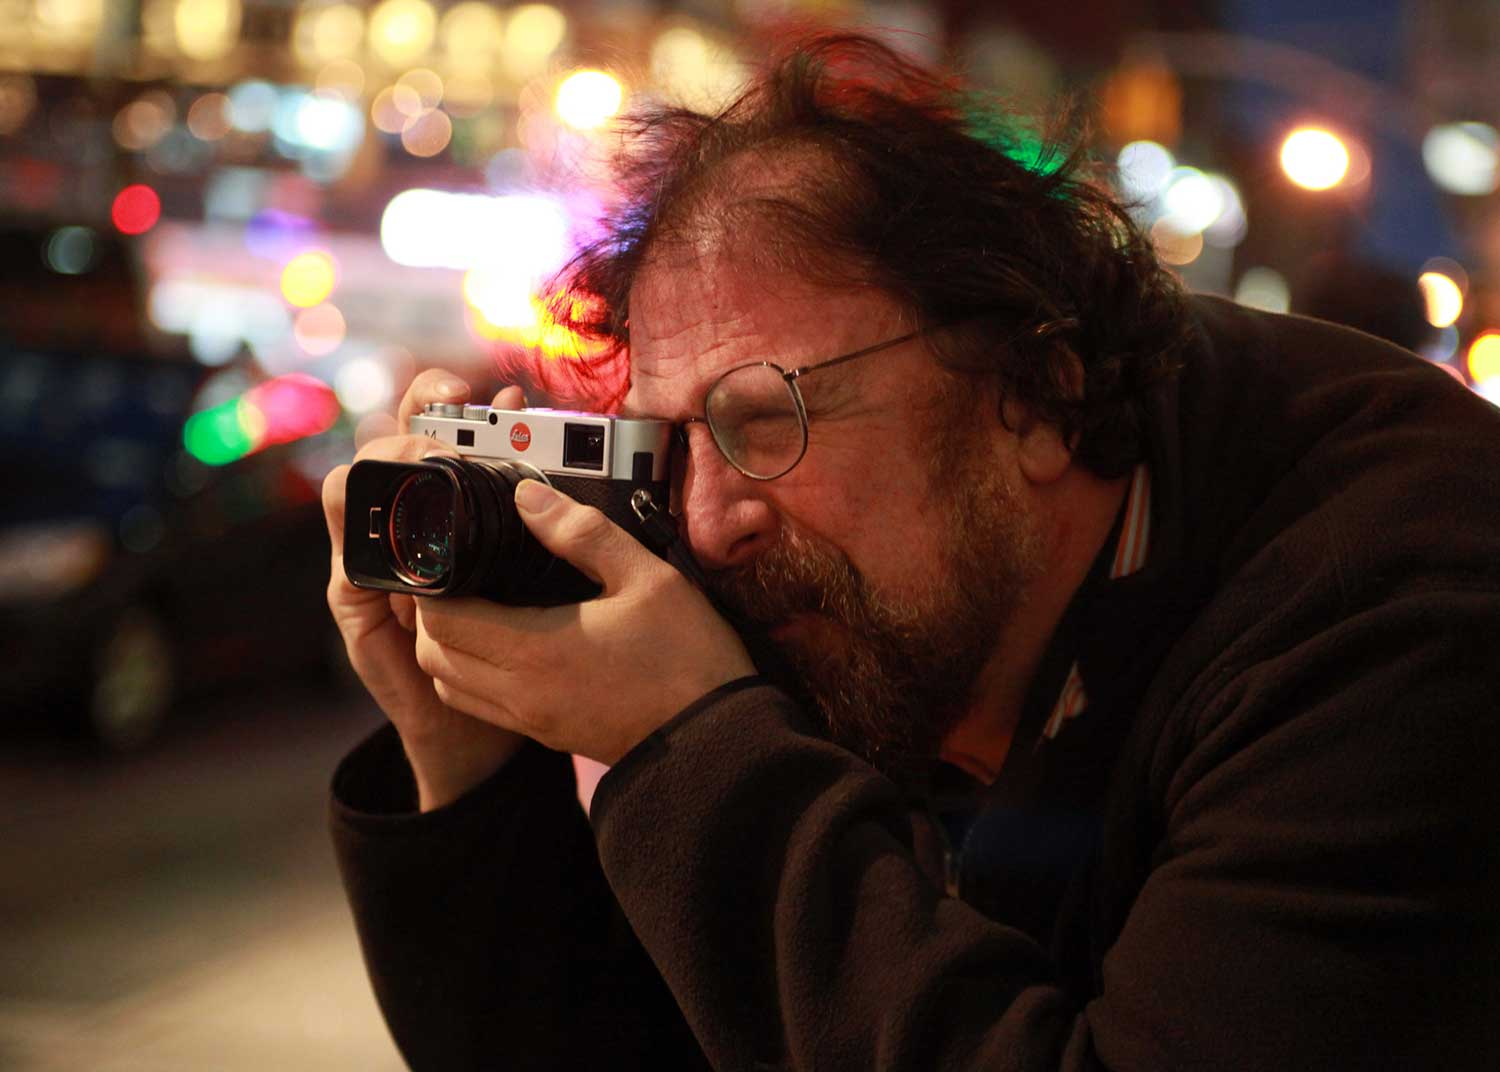 Jim Estrin taking a picture with a point and shoot camera